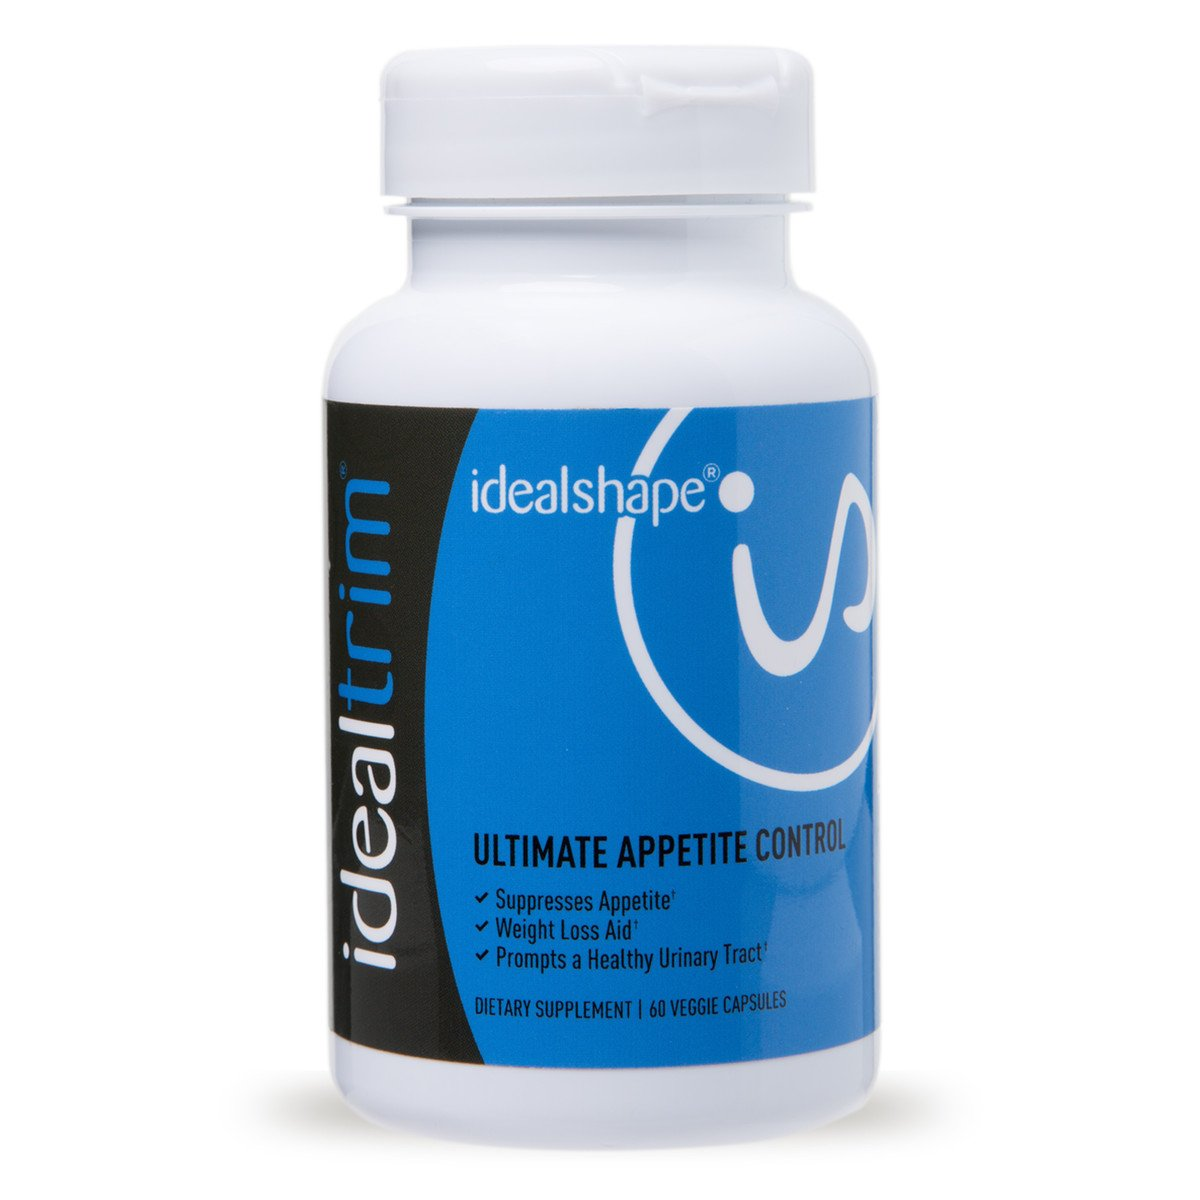 IdealTrim, Appetite Suppressant For Weight Loss - Slendesta and Garcinia Cambogia - Lose Water Weight, Control Hunger and Get More Energy - 30 Servings by IdealShape